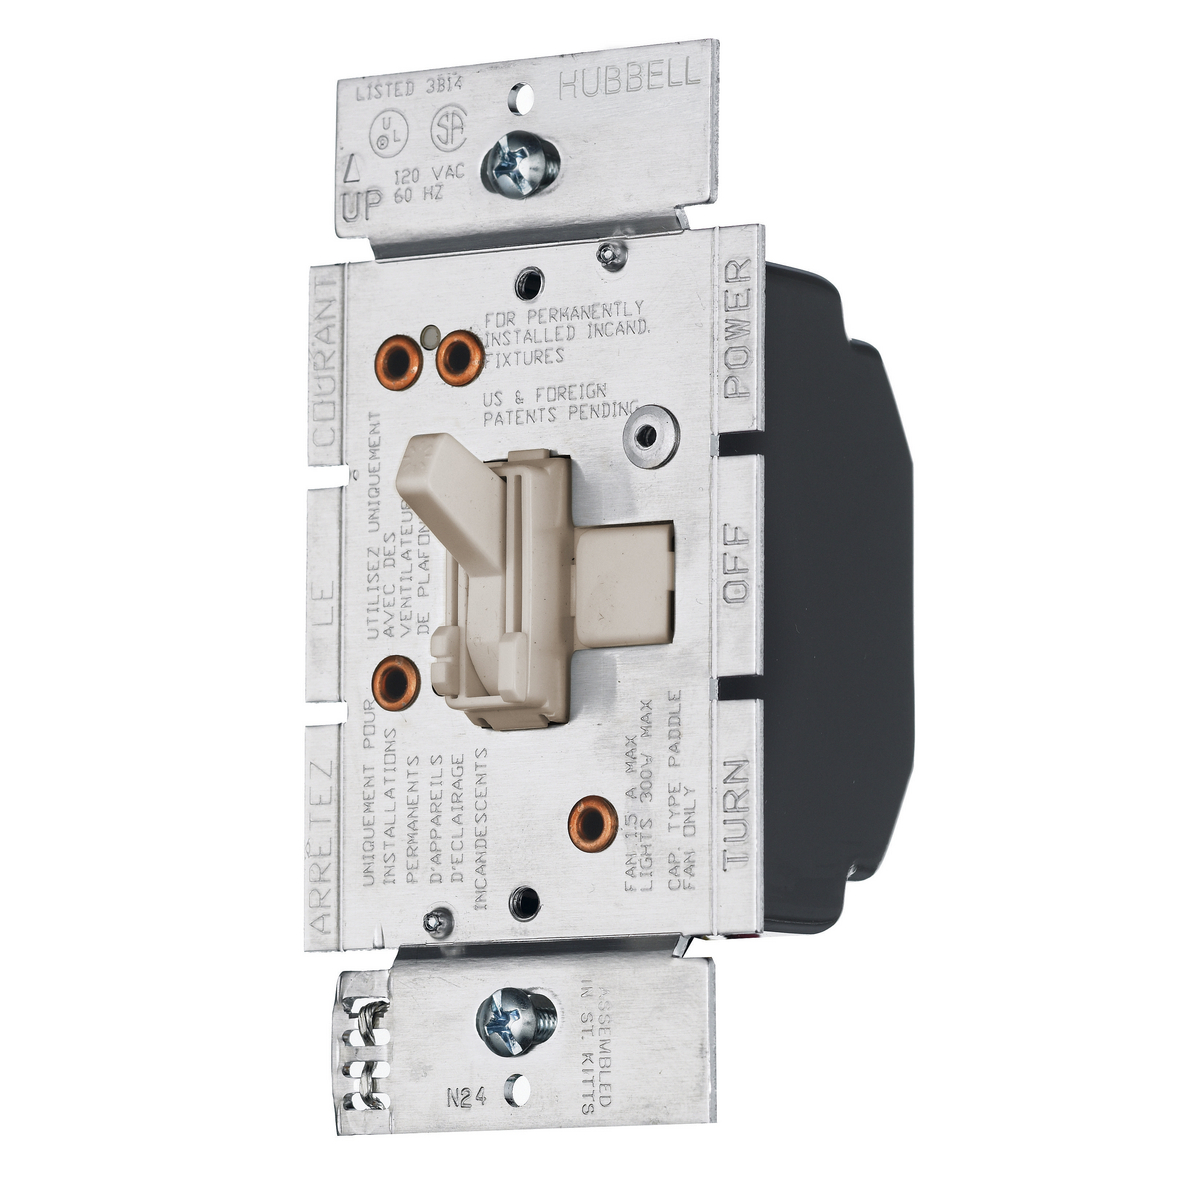 ray2lfsqla dimmers fan speed controls residential devices rh hubbell com eaton residential wiring devices eaton residential & wiring devices division